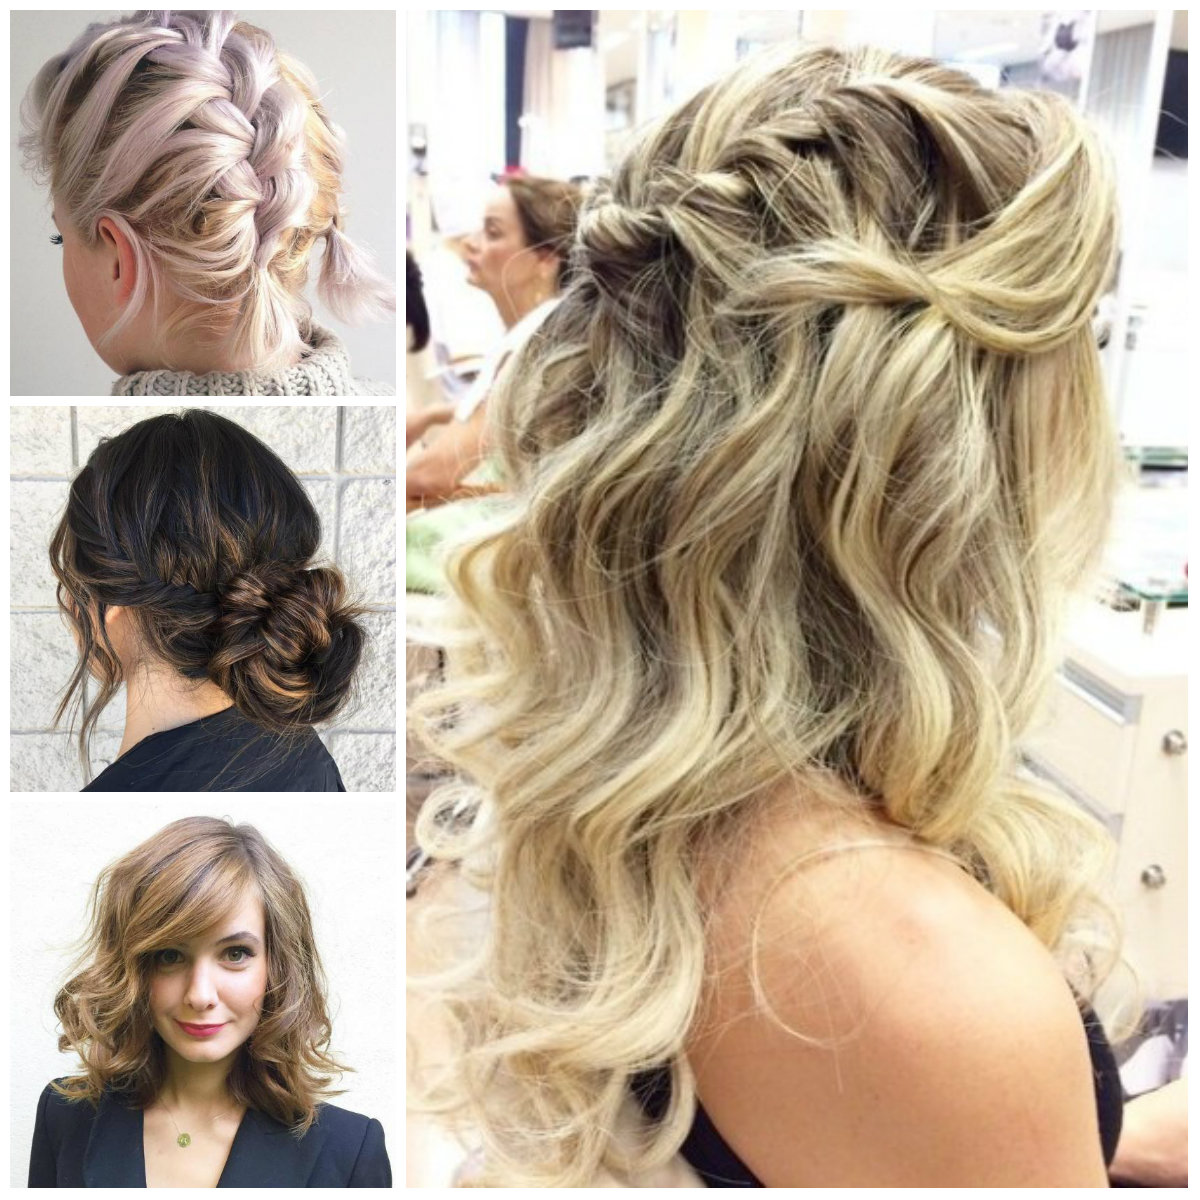 Casual Hairstyles | 2019 Haircuts, Hairstyles and Hair Colors